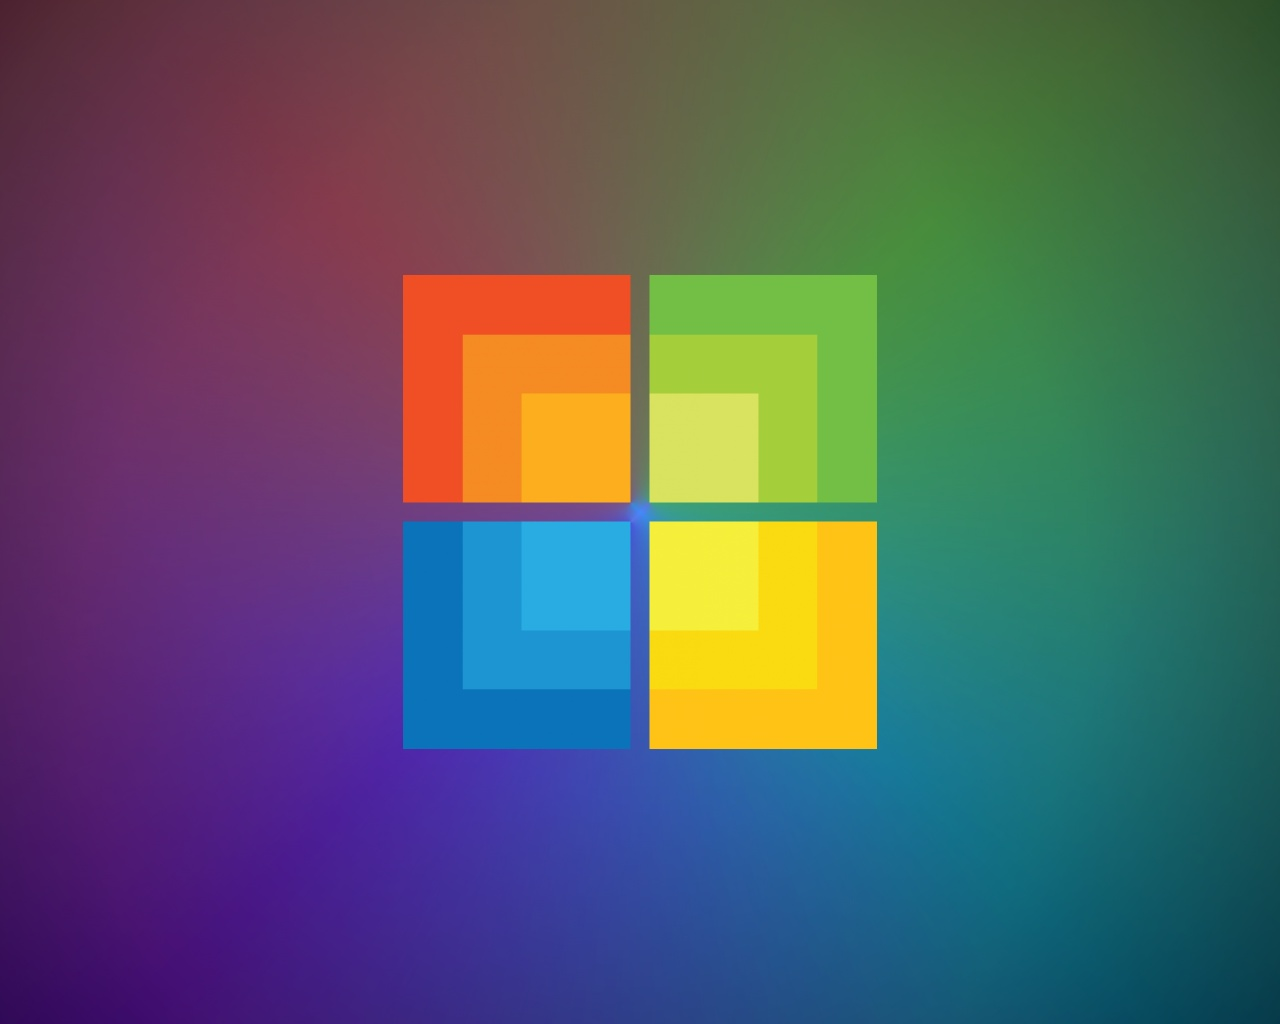 microsoft windows wallpapers by gifteddeviant - photo #39